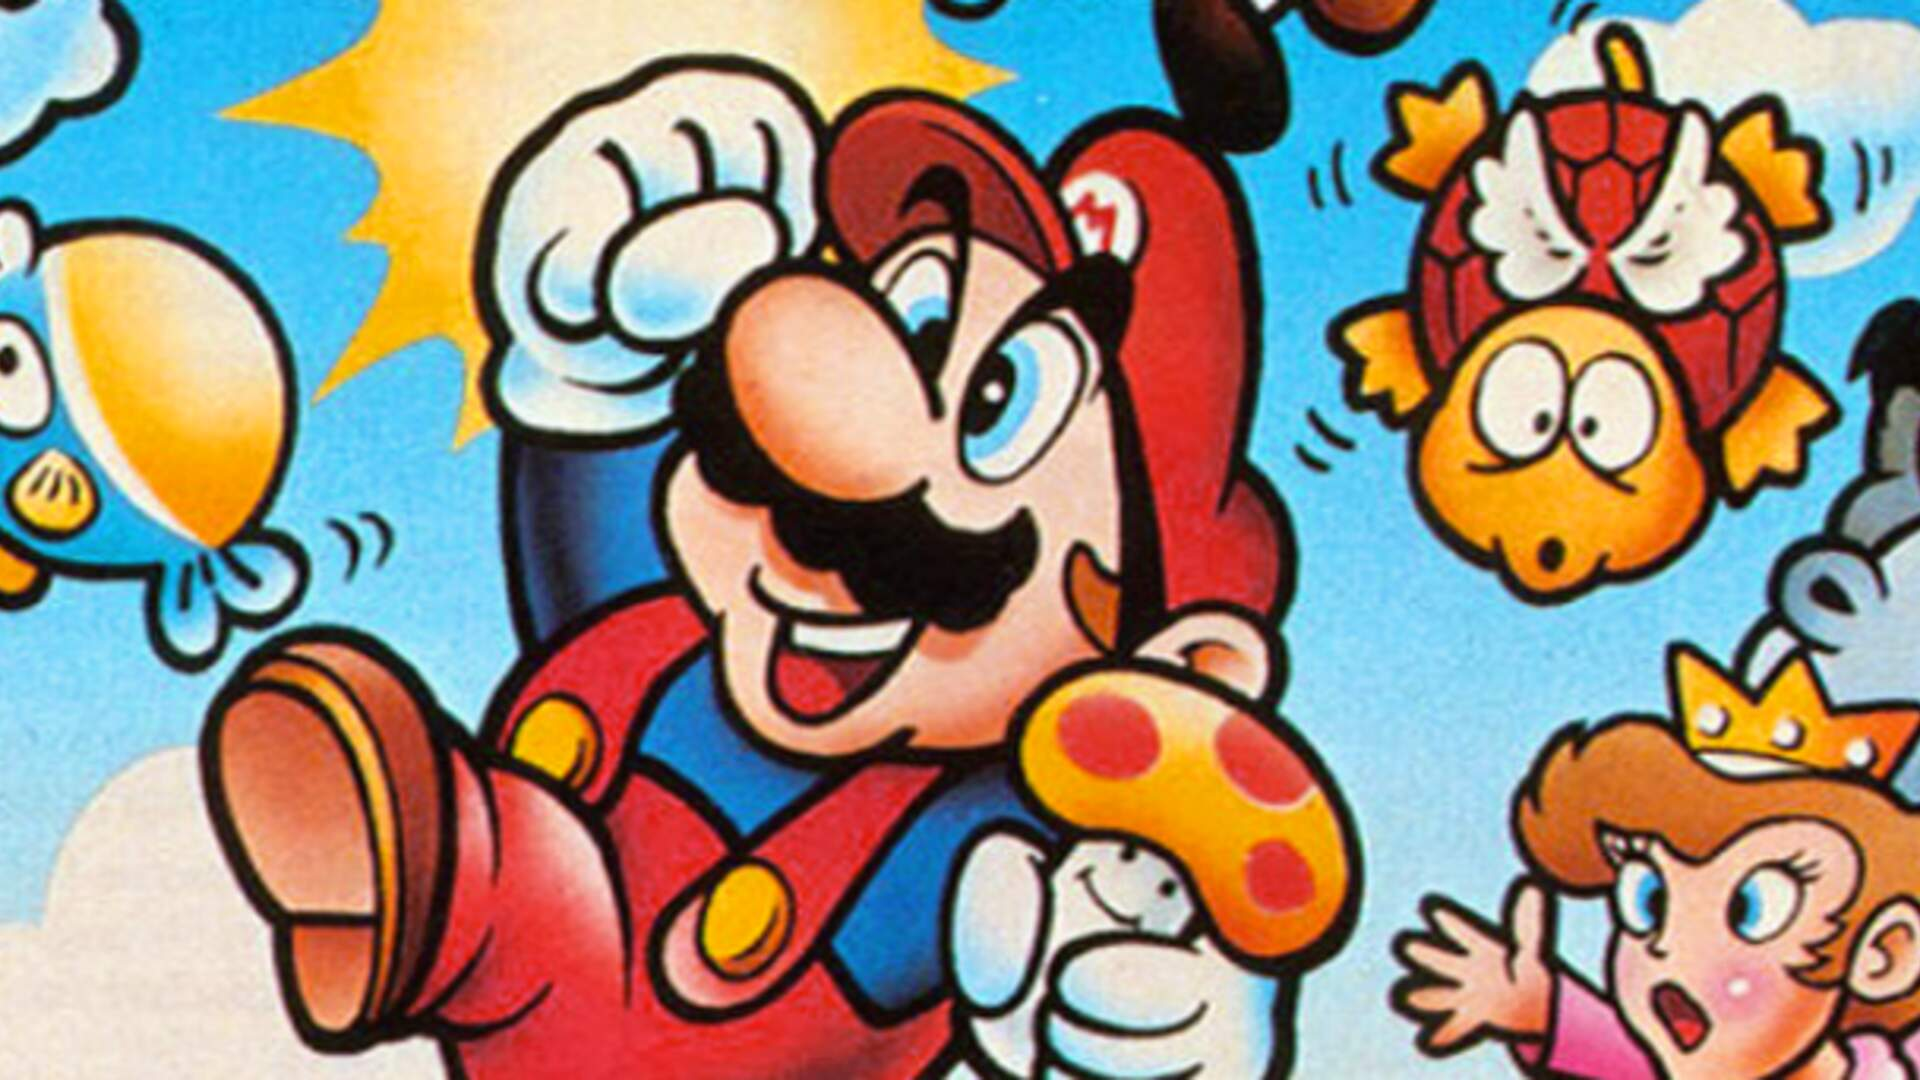 Nintendo and Illumination Entertainment Are Close to Securing a Deal for an Animated Super Mario Movie: Report